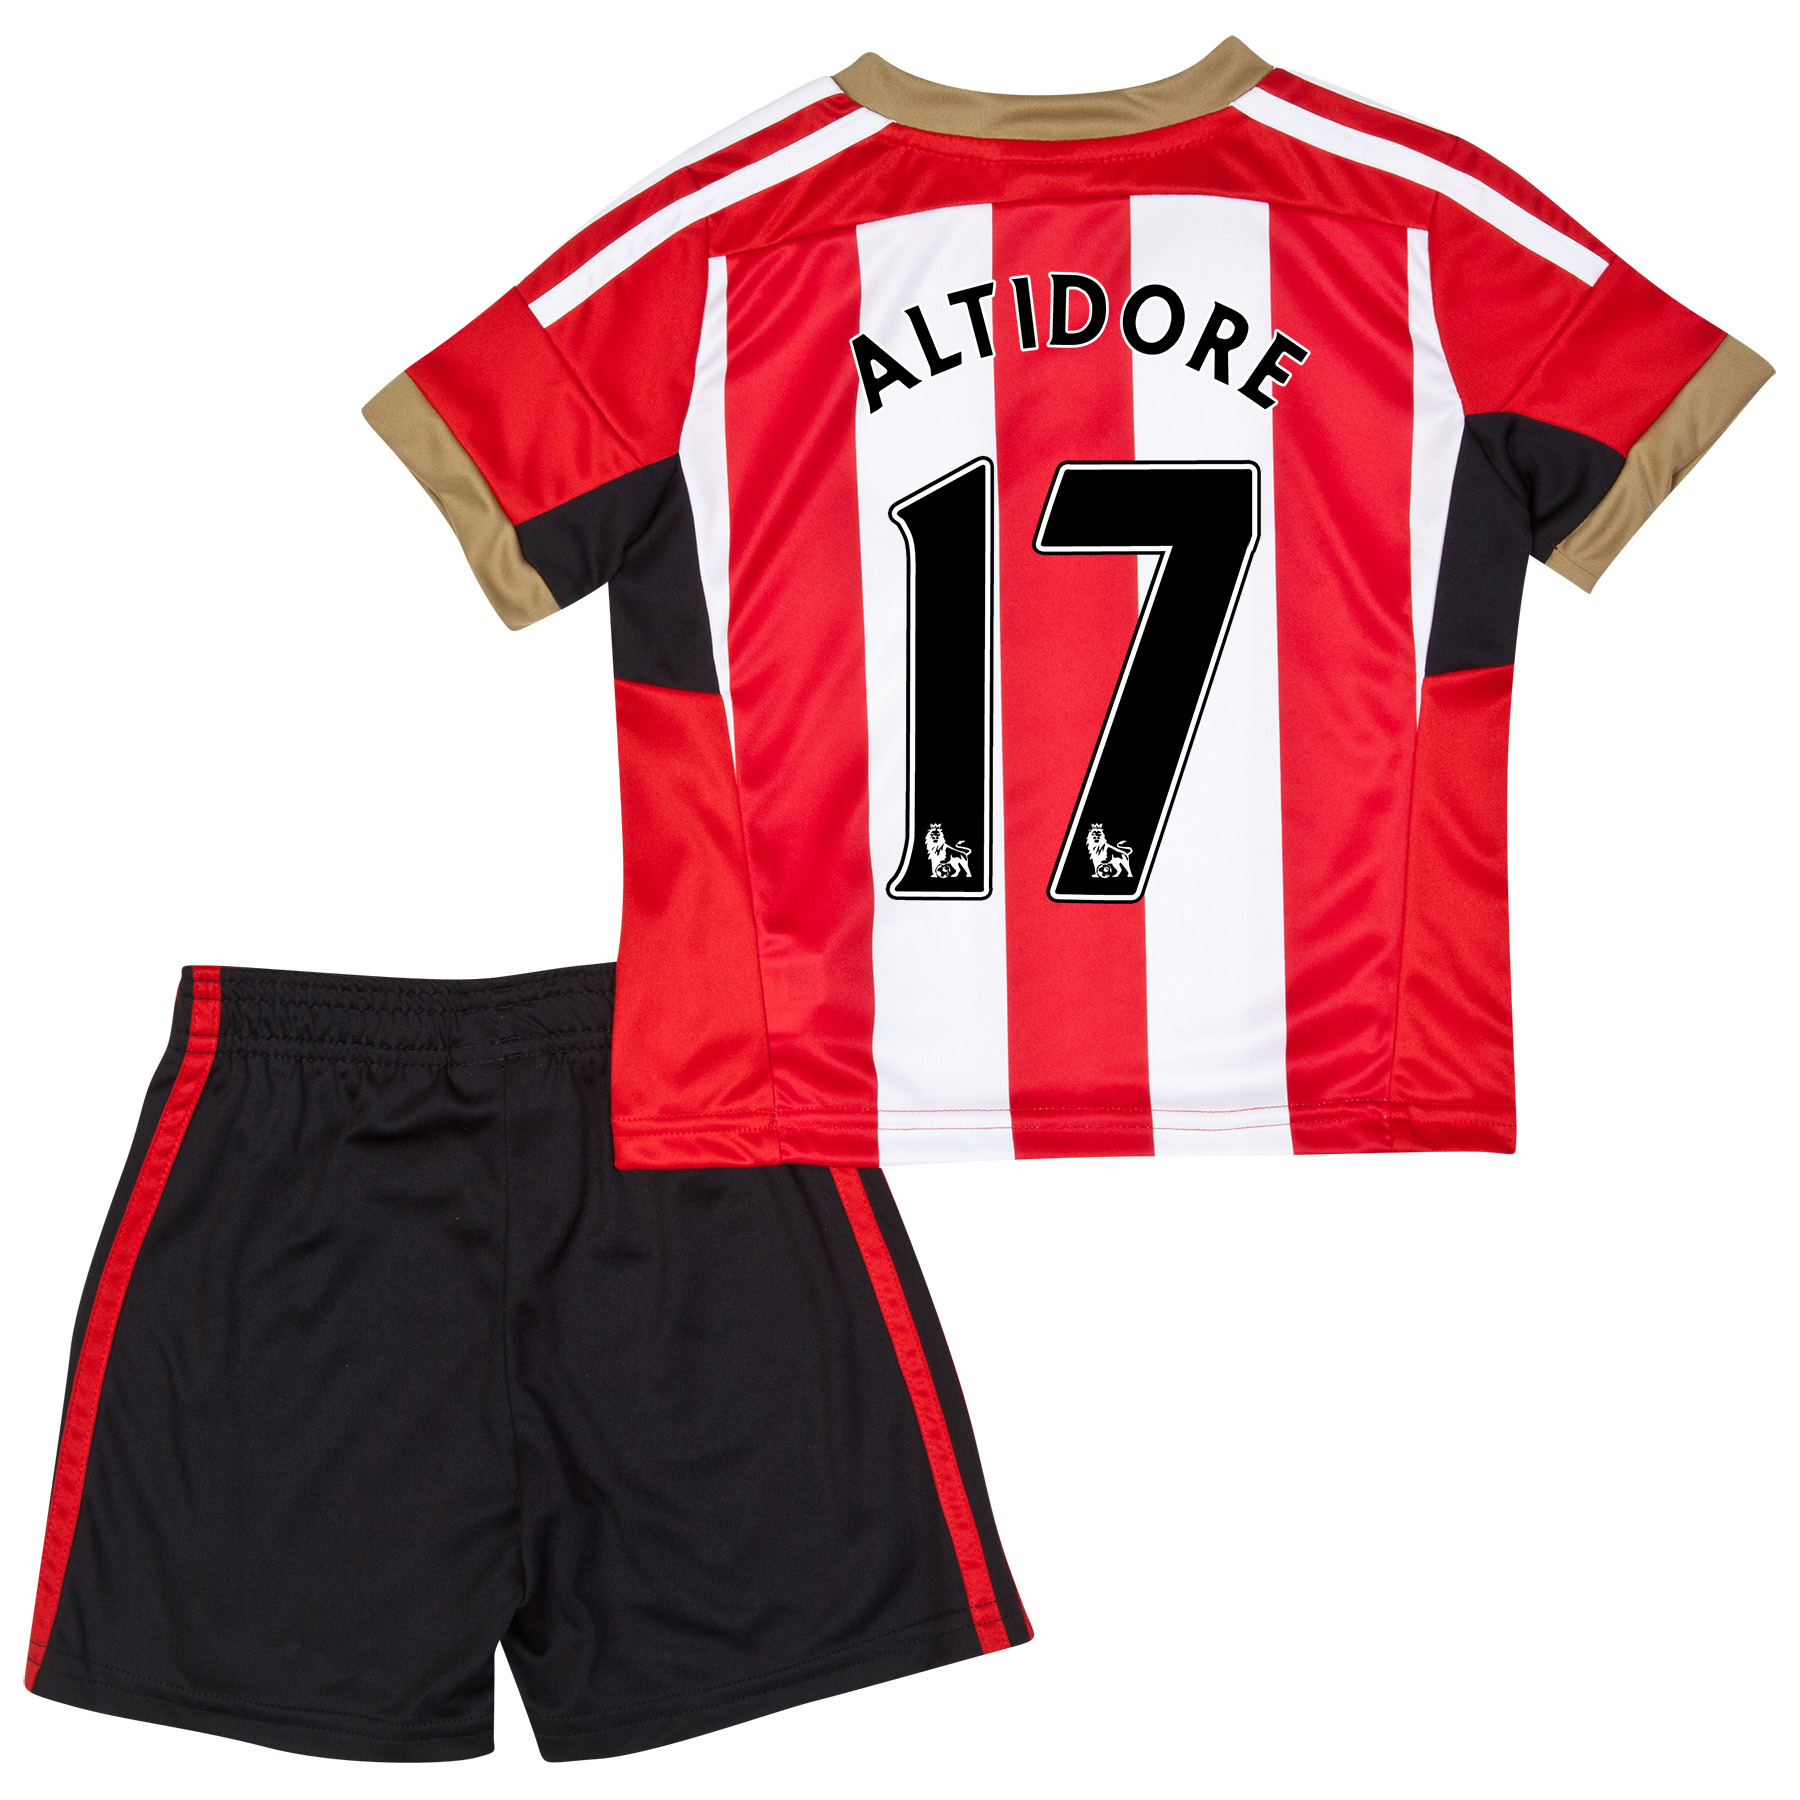 Sunderland Mini Kit 2014/15 Red with Altidore 17 printing